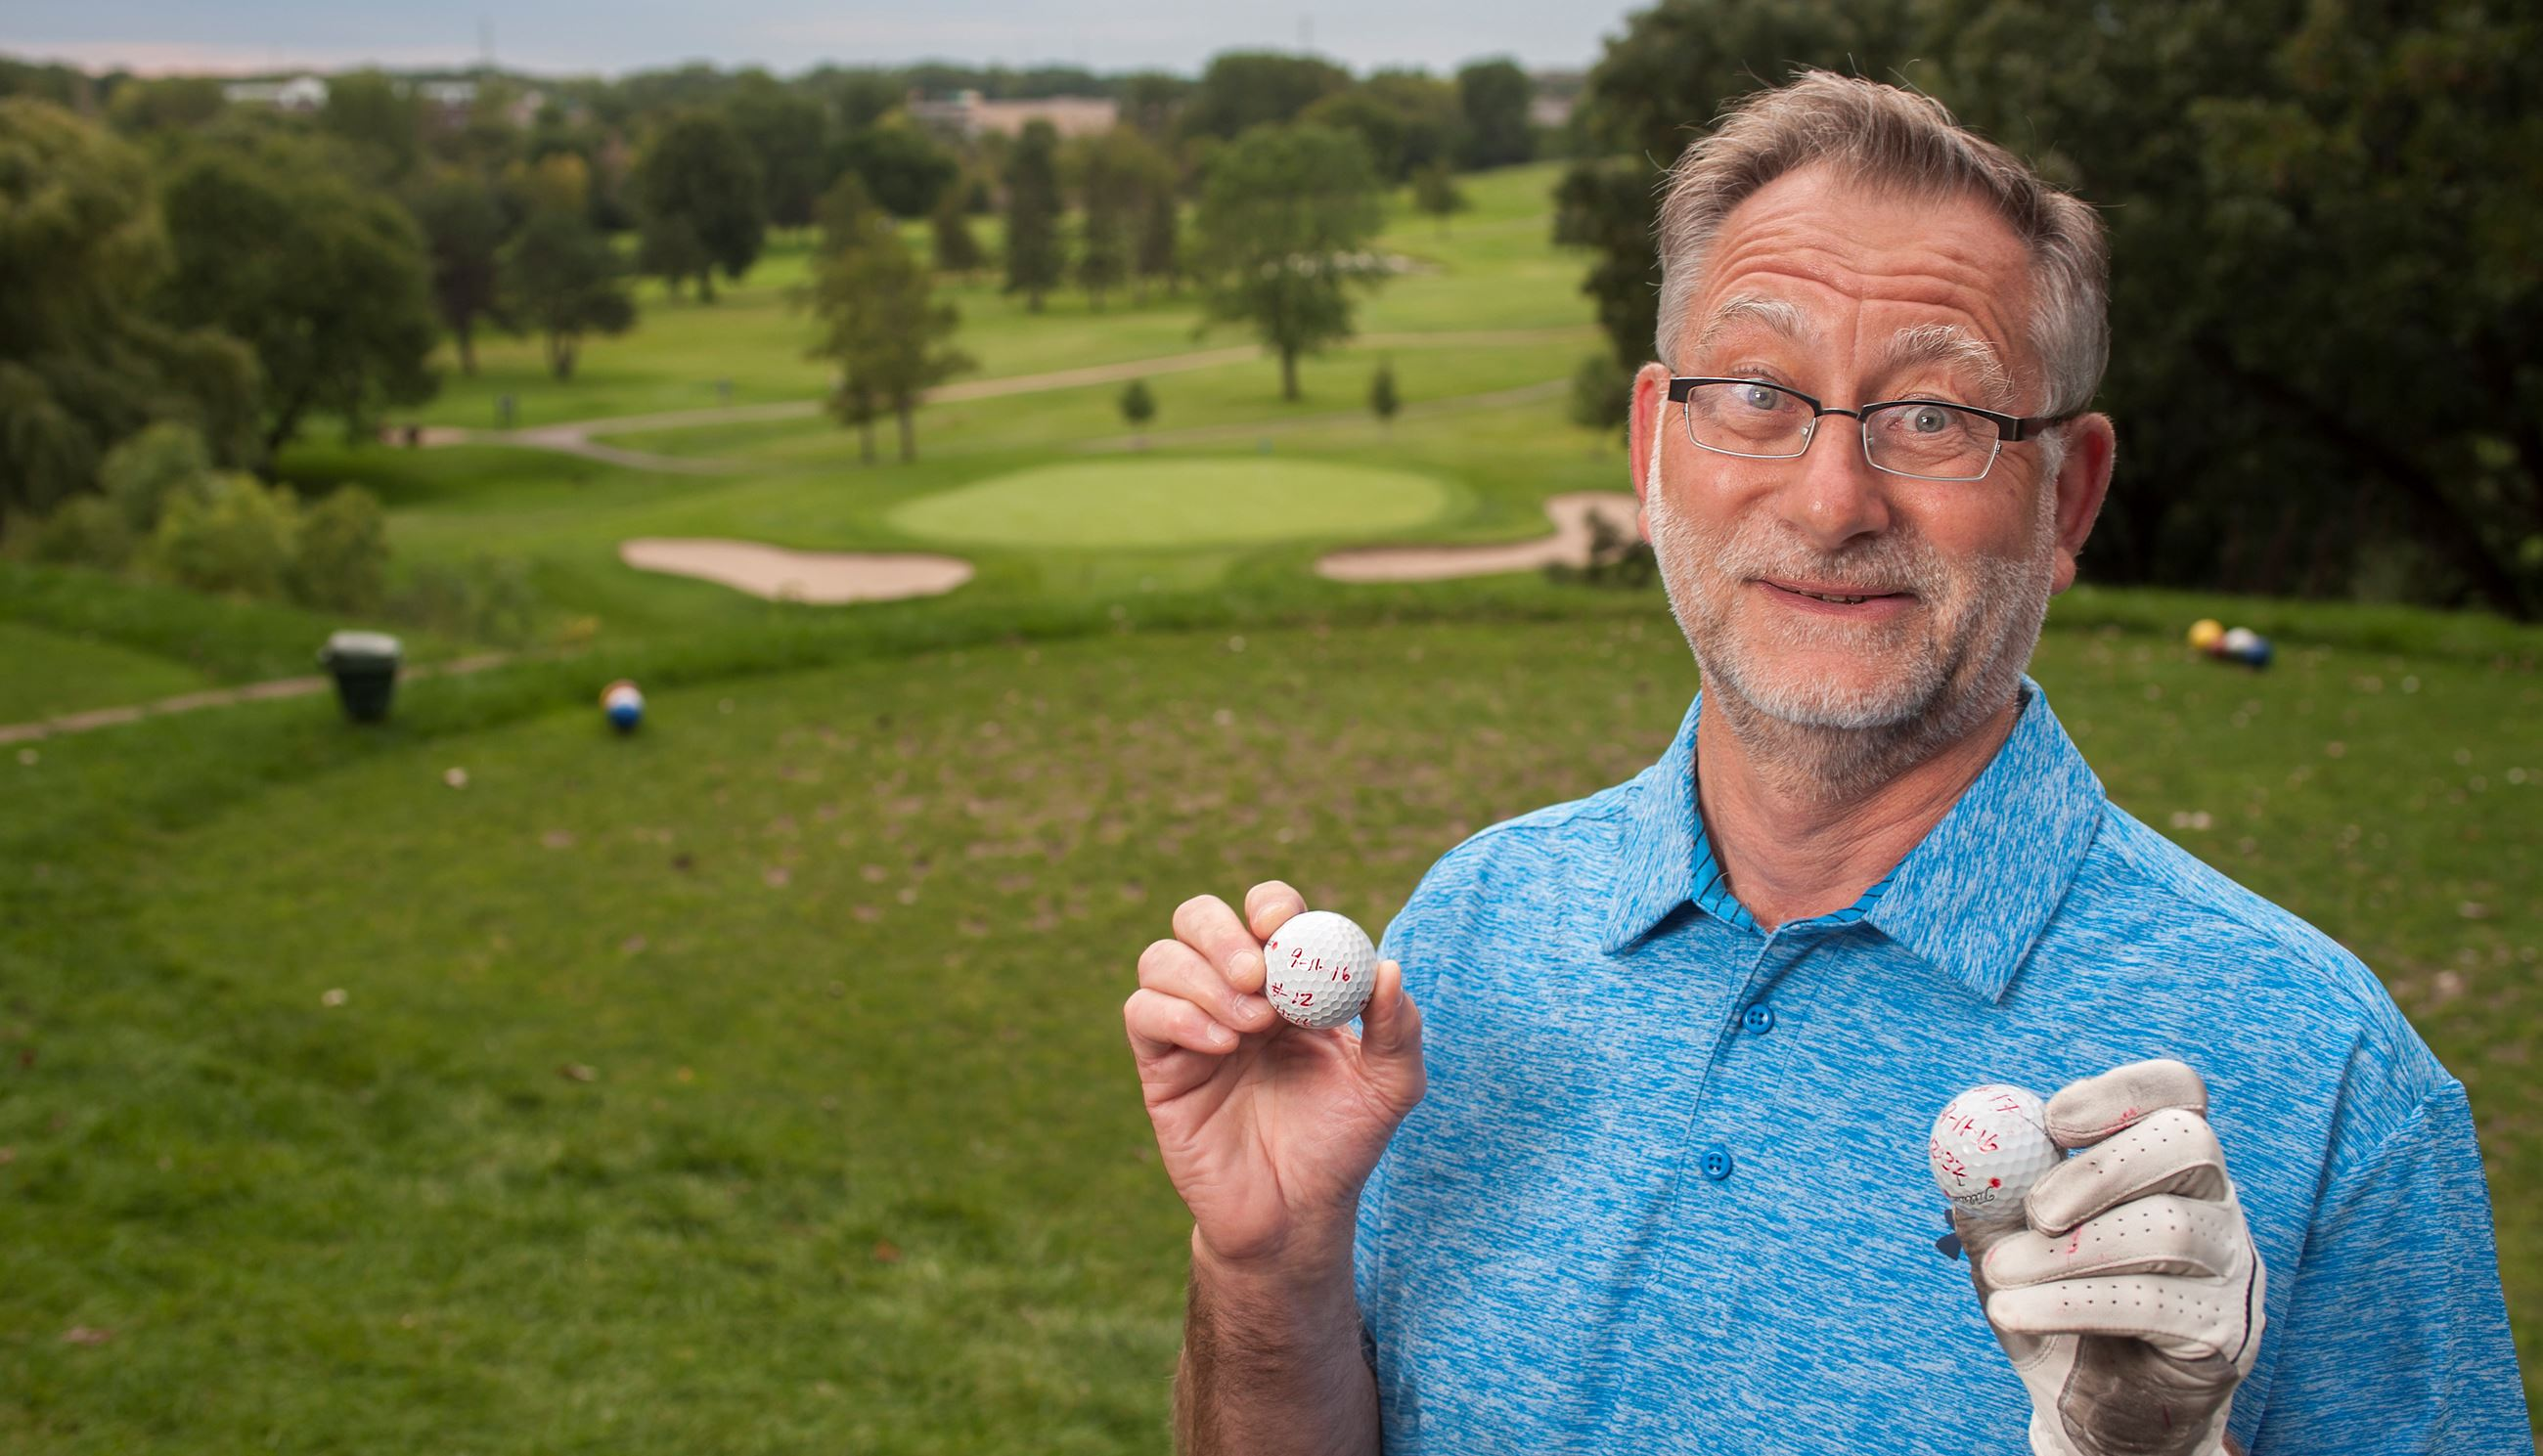 Michael Zamyslowski holding his 2-hole-in-one golf balls